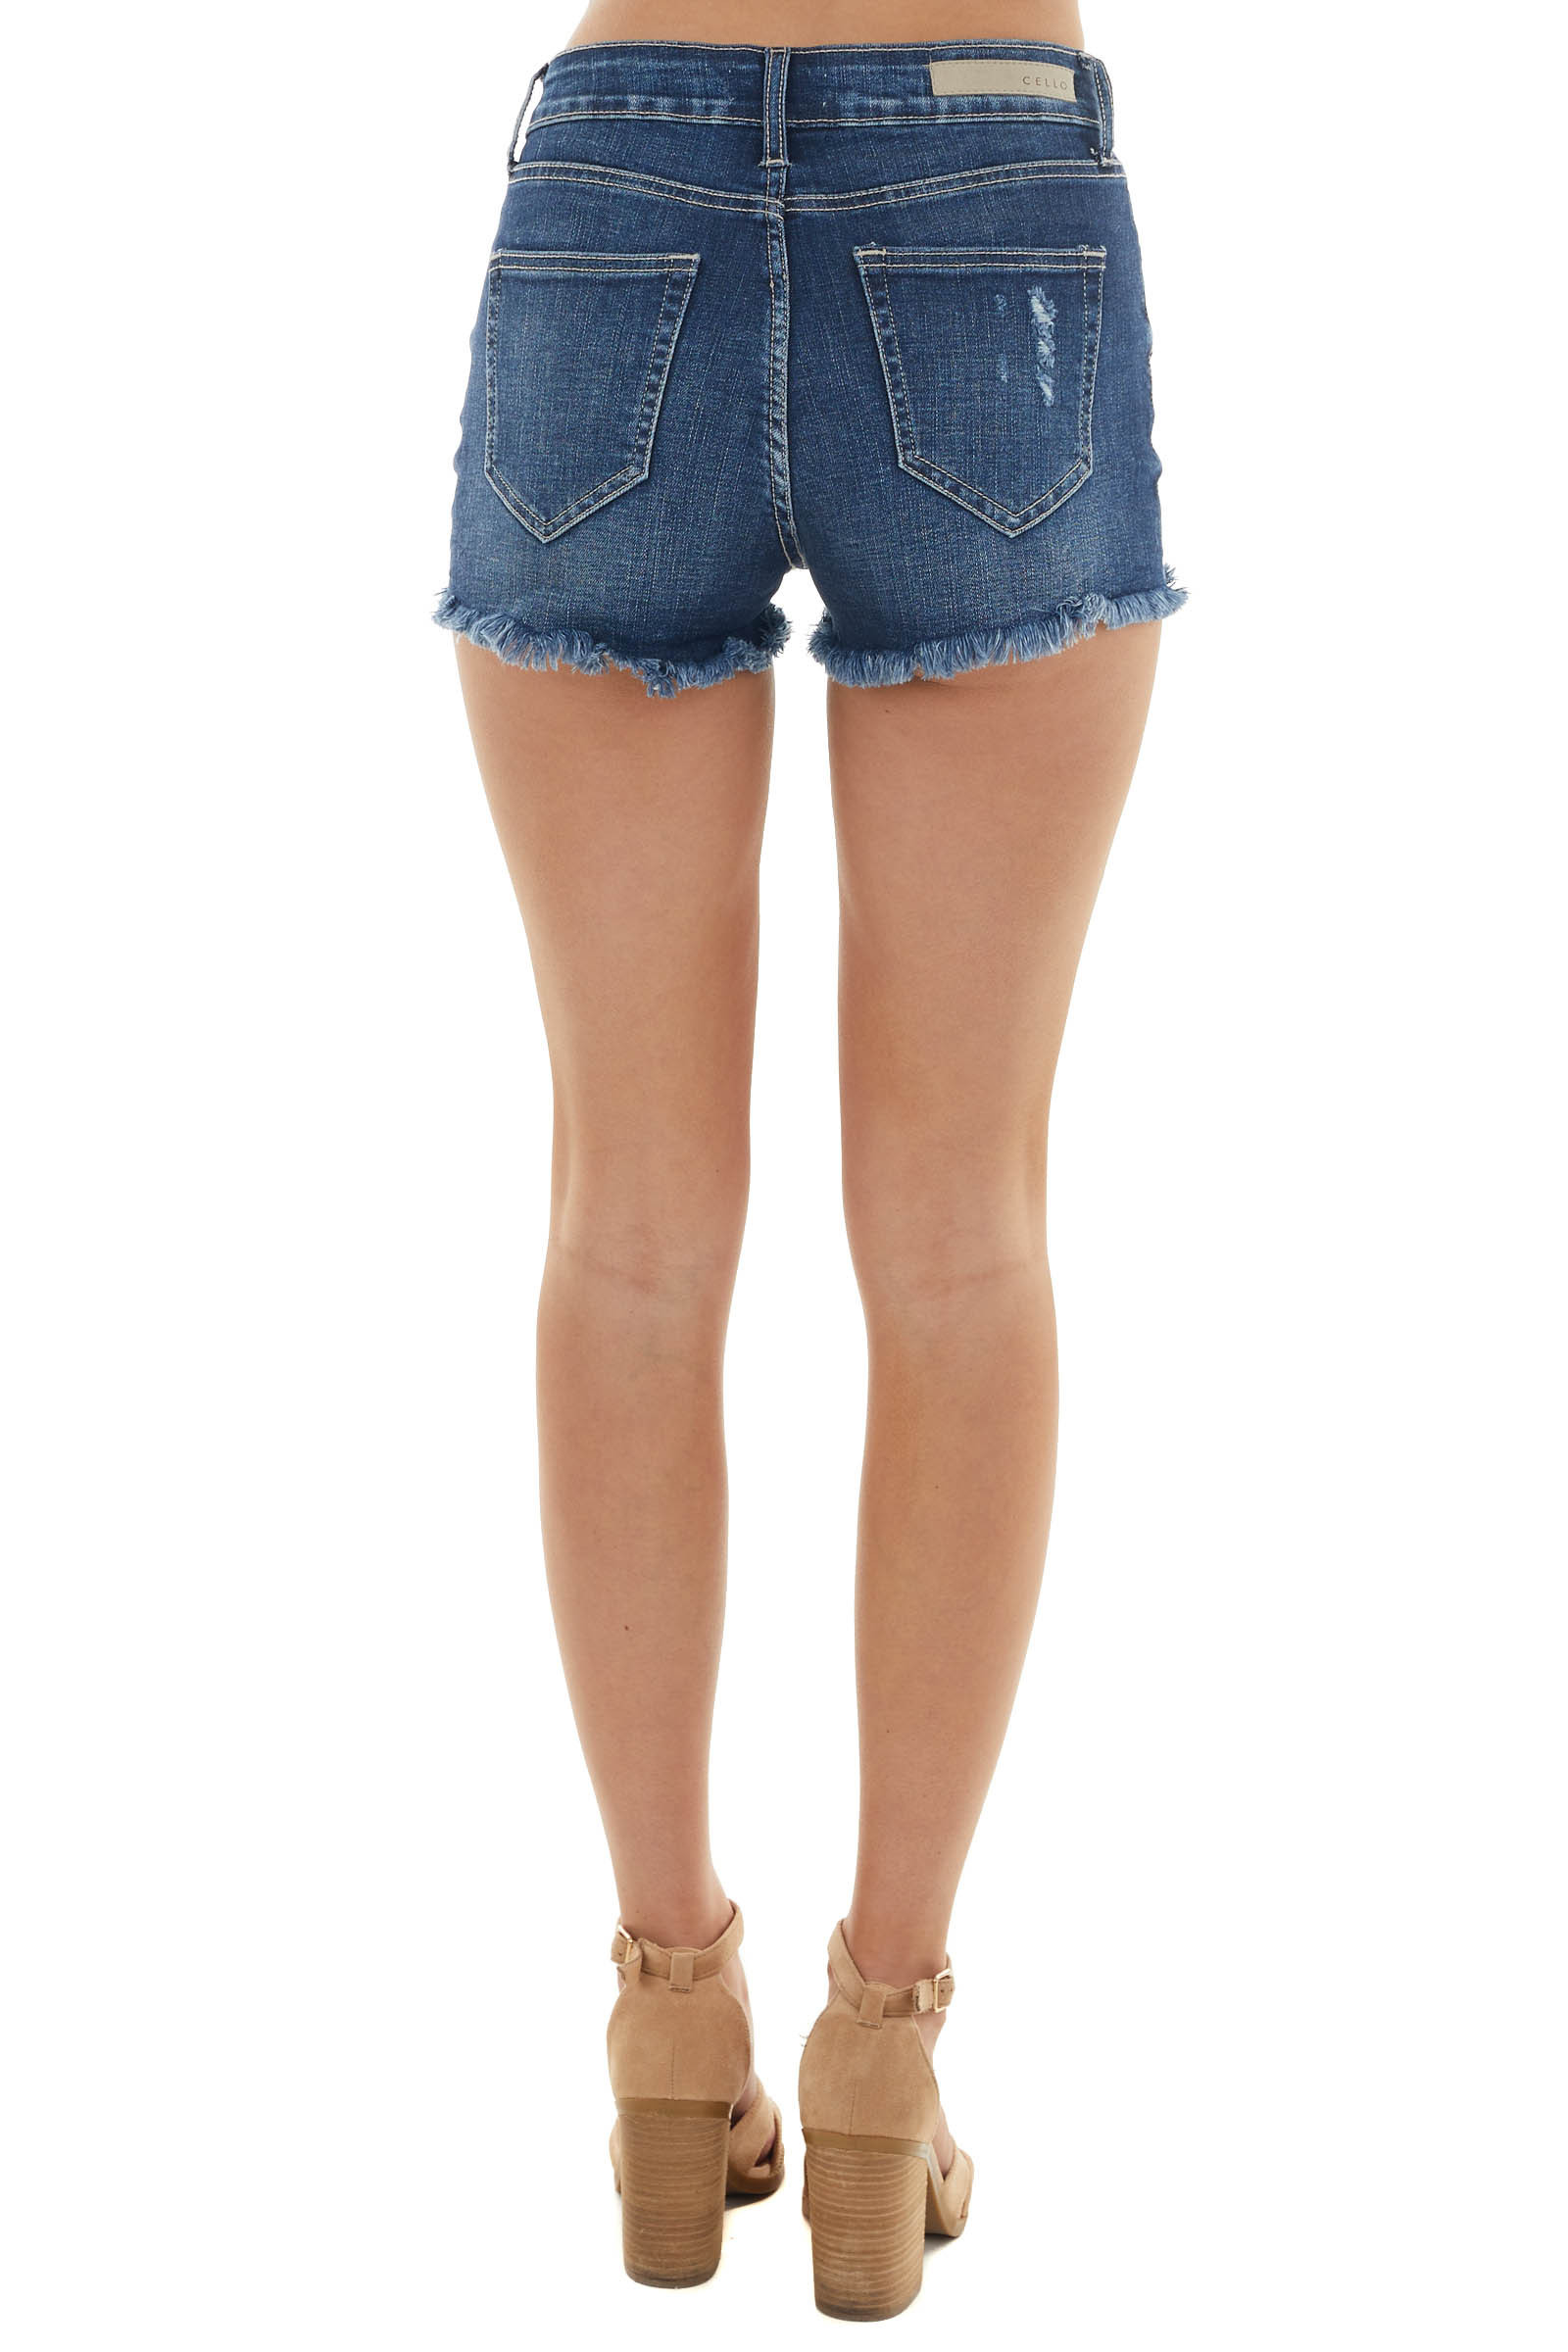 Dark Mid Rise Shorts with Distressed Detail